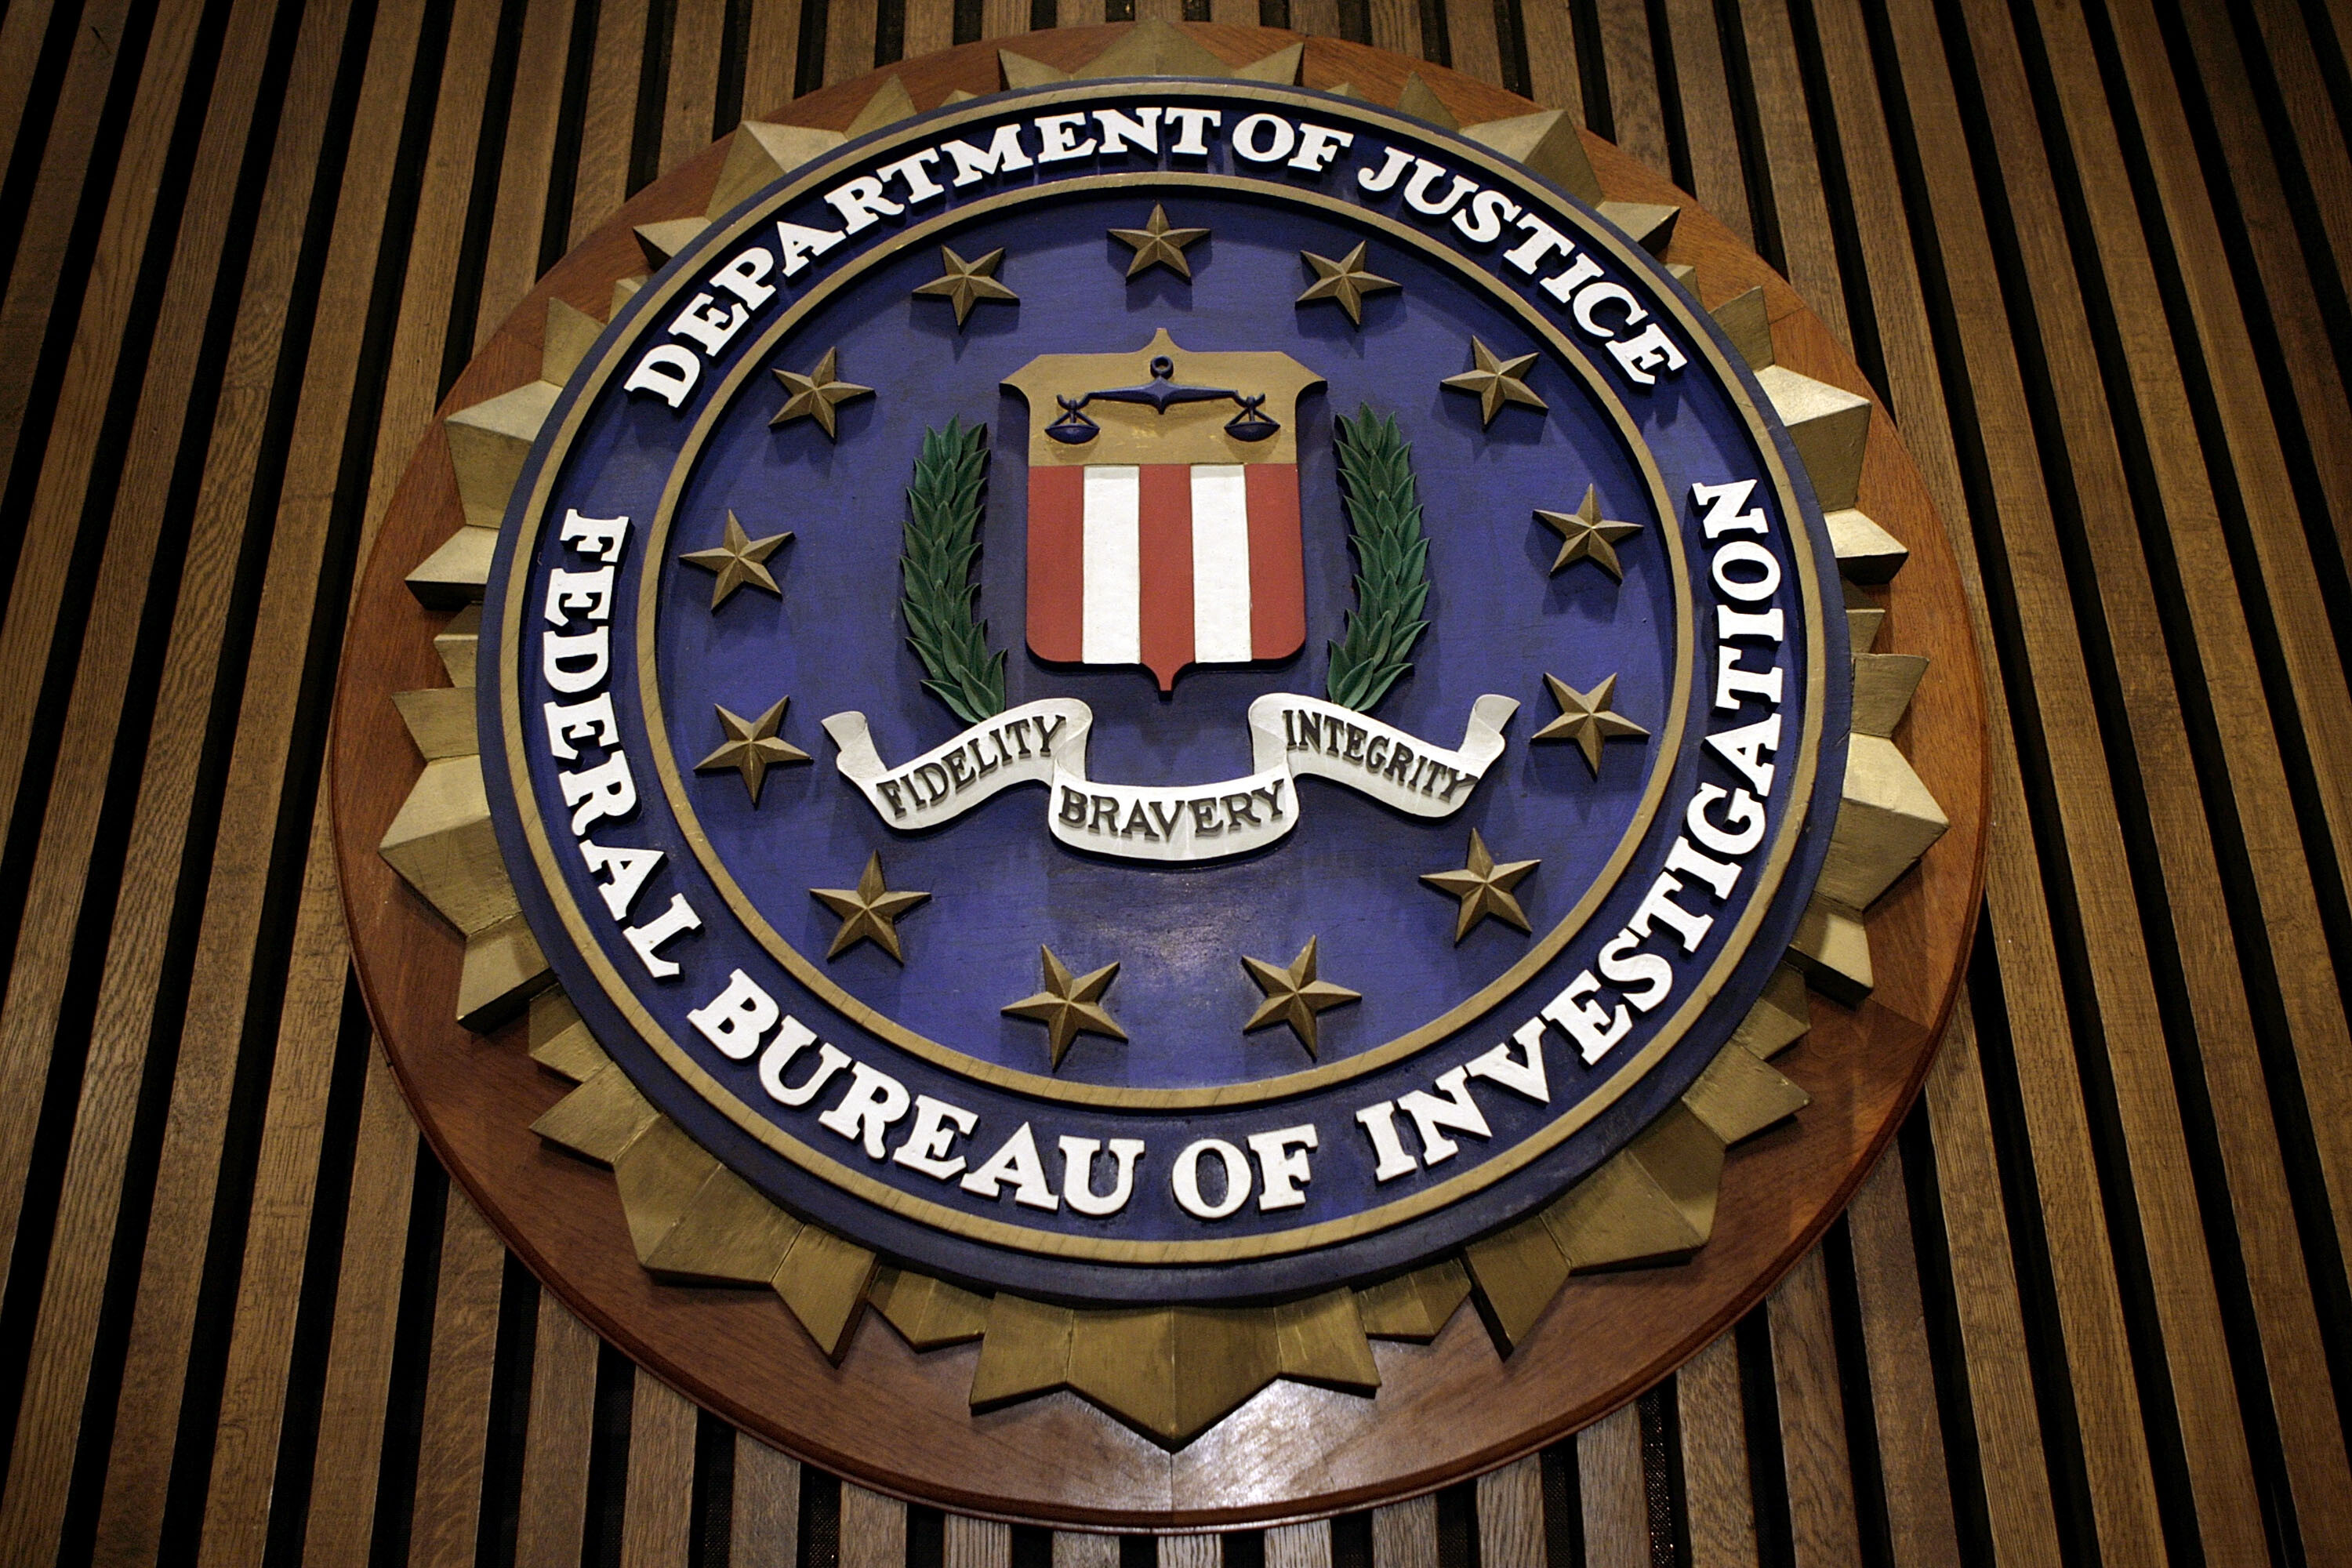 FBI used 'provocative photos' of female office staff to catch sexual predators, watchdog says